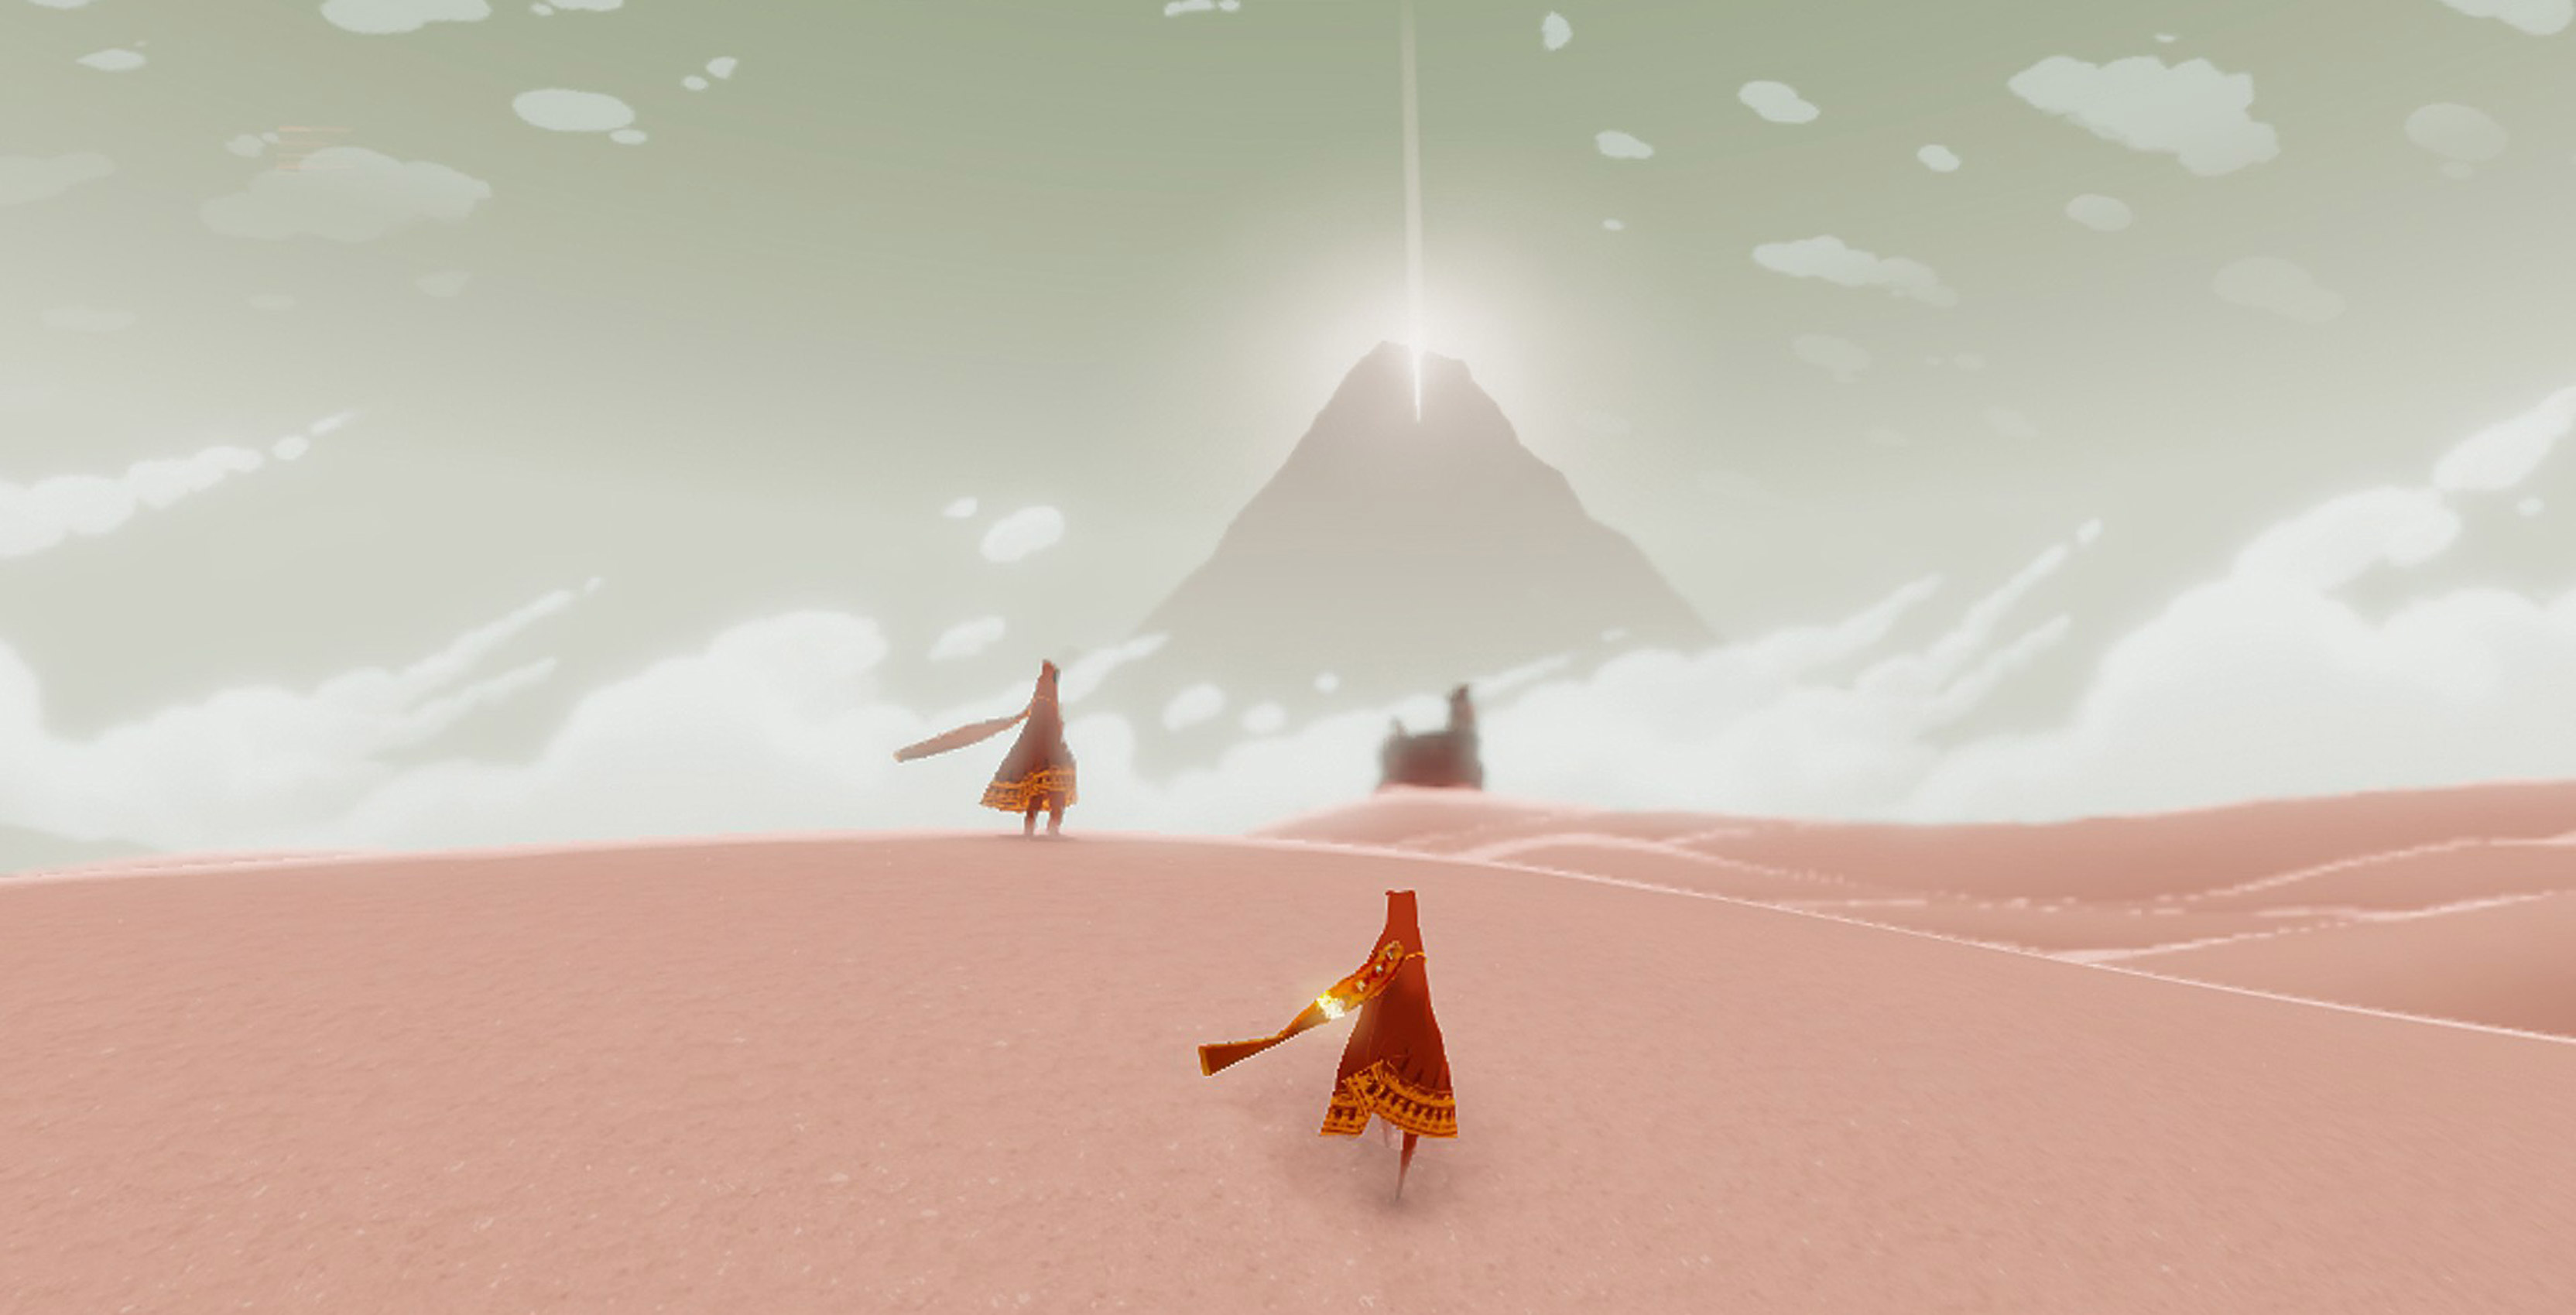 Journey is now available on iOS